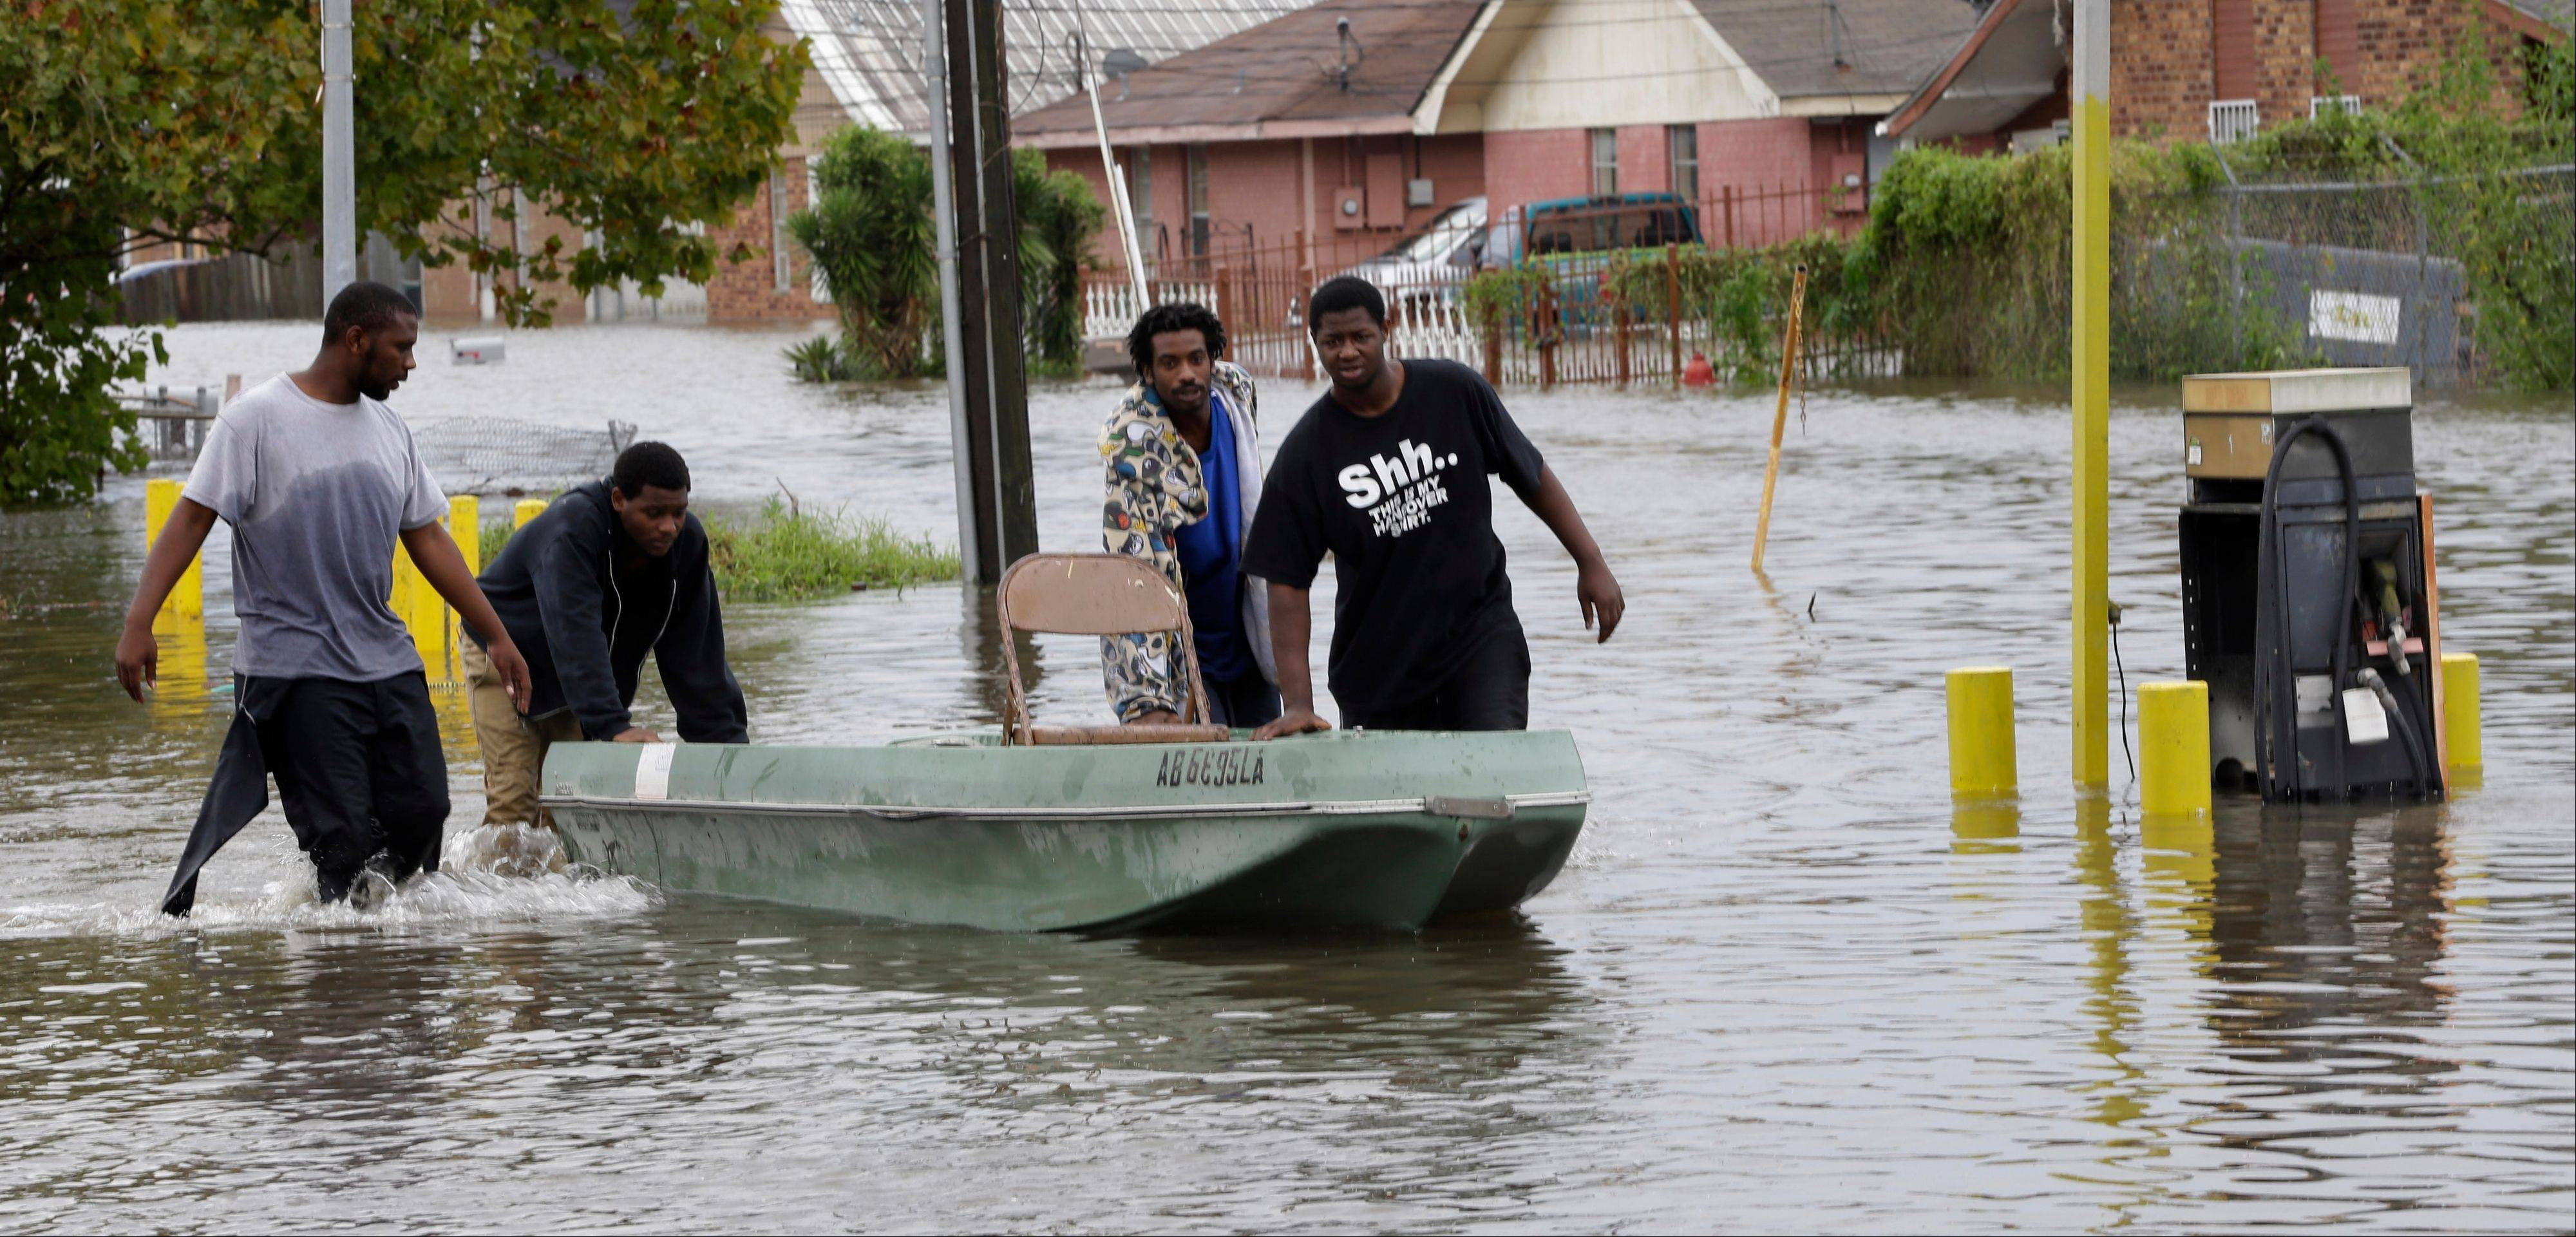 Residents use a boat to navigate their flooded neighborhood, Thursday, Aug. 30, 2012, in LaPlace, La.